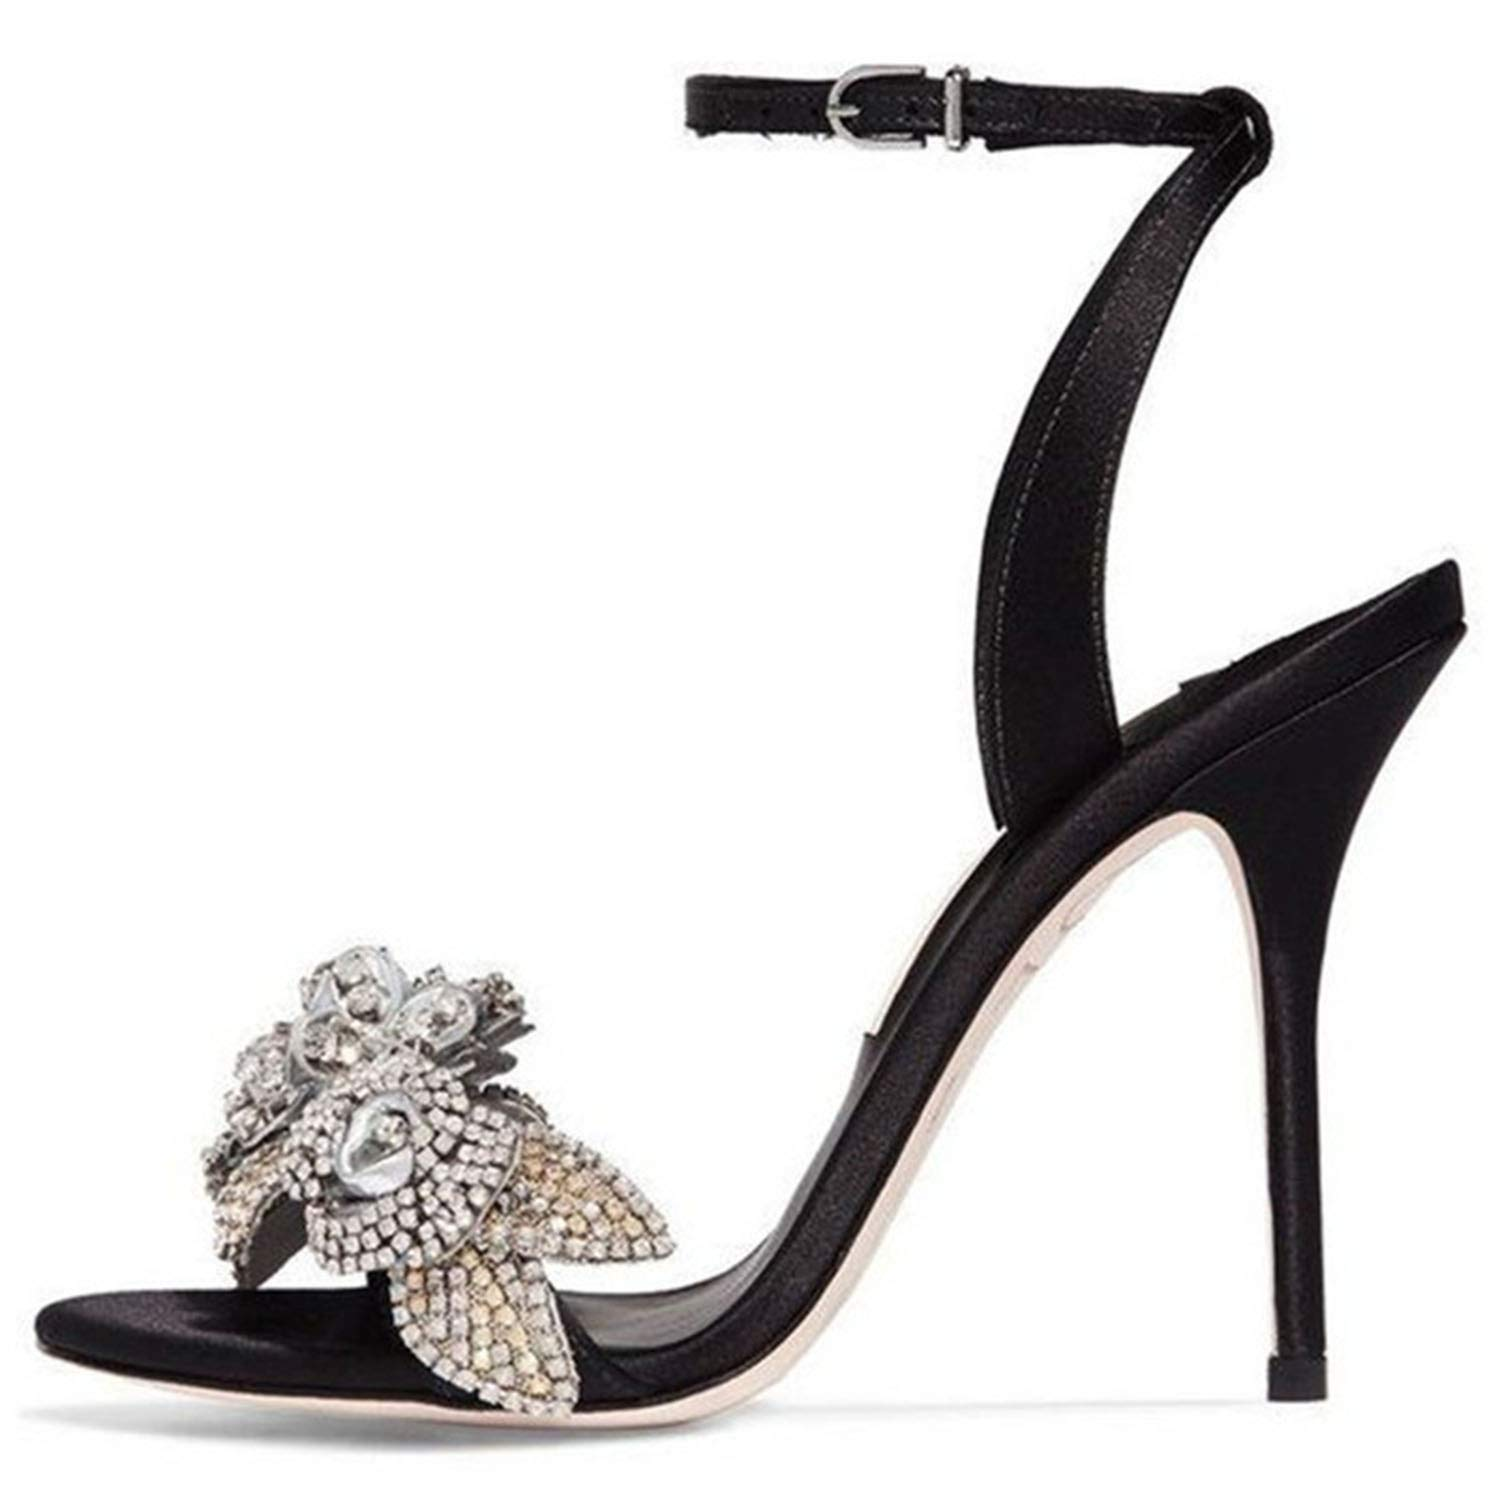 20 Metal Crystal Flower Women shoes Round Toe Solid shoes Slim Shallow Sexy Narrow Buckle Thin High Sandals